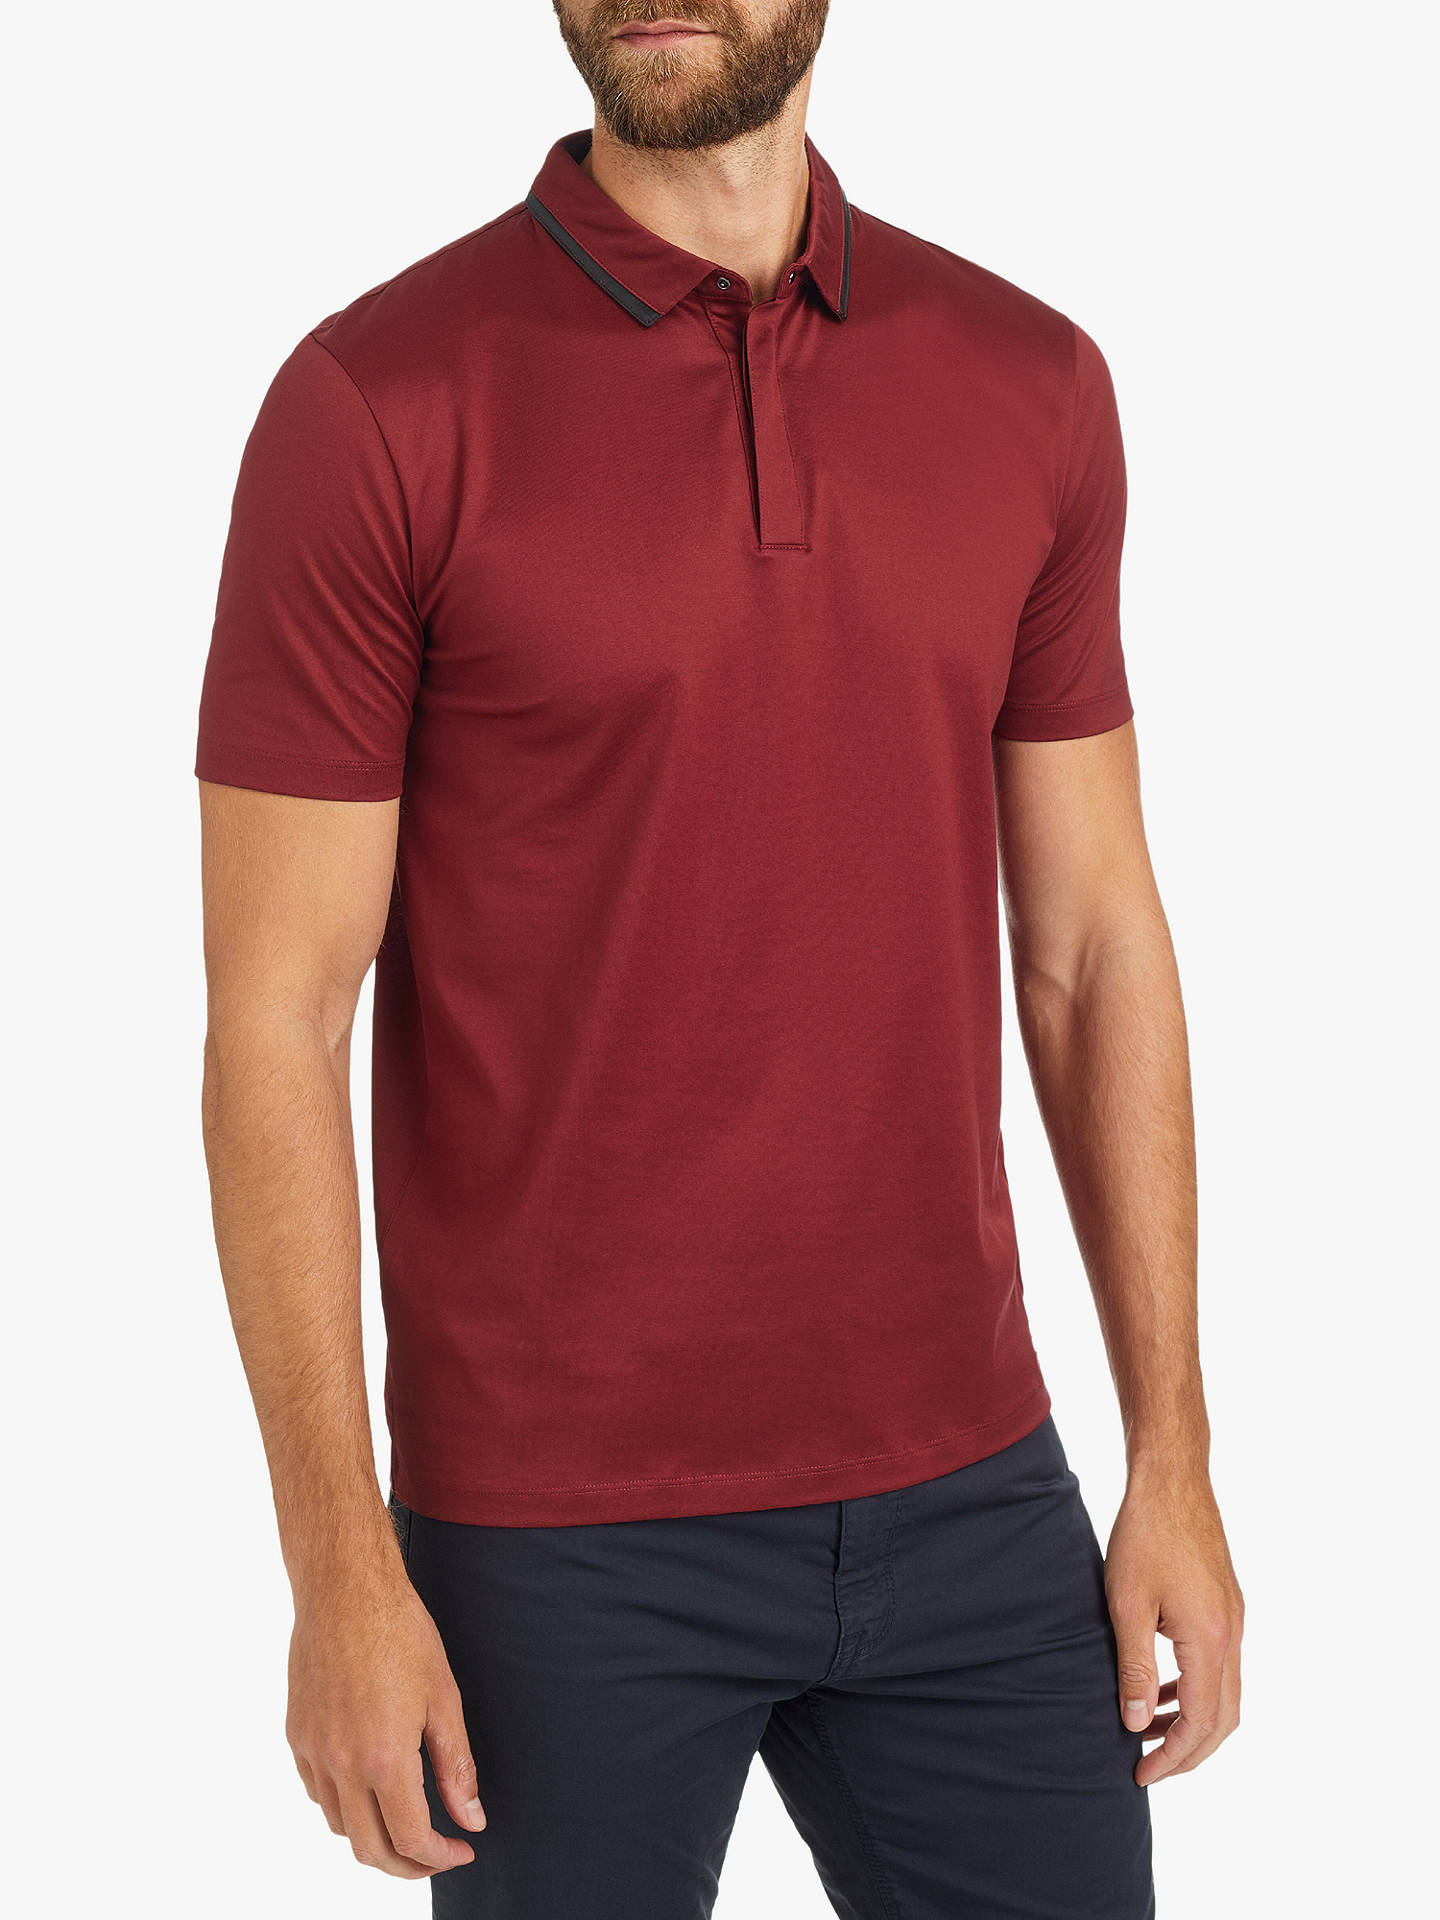 94e730b6 Buy HUGO by Hugo Boss Darseille Slim Fit Polo Shirt, Red, S Online at ...